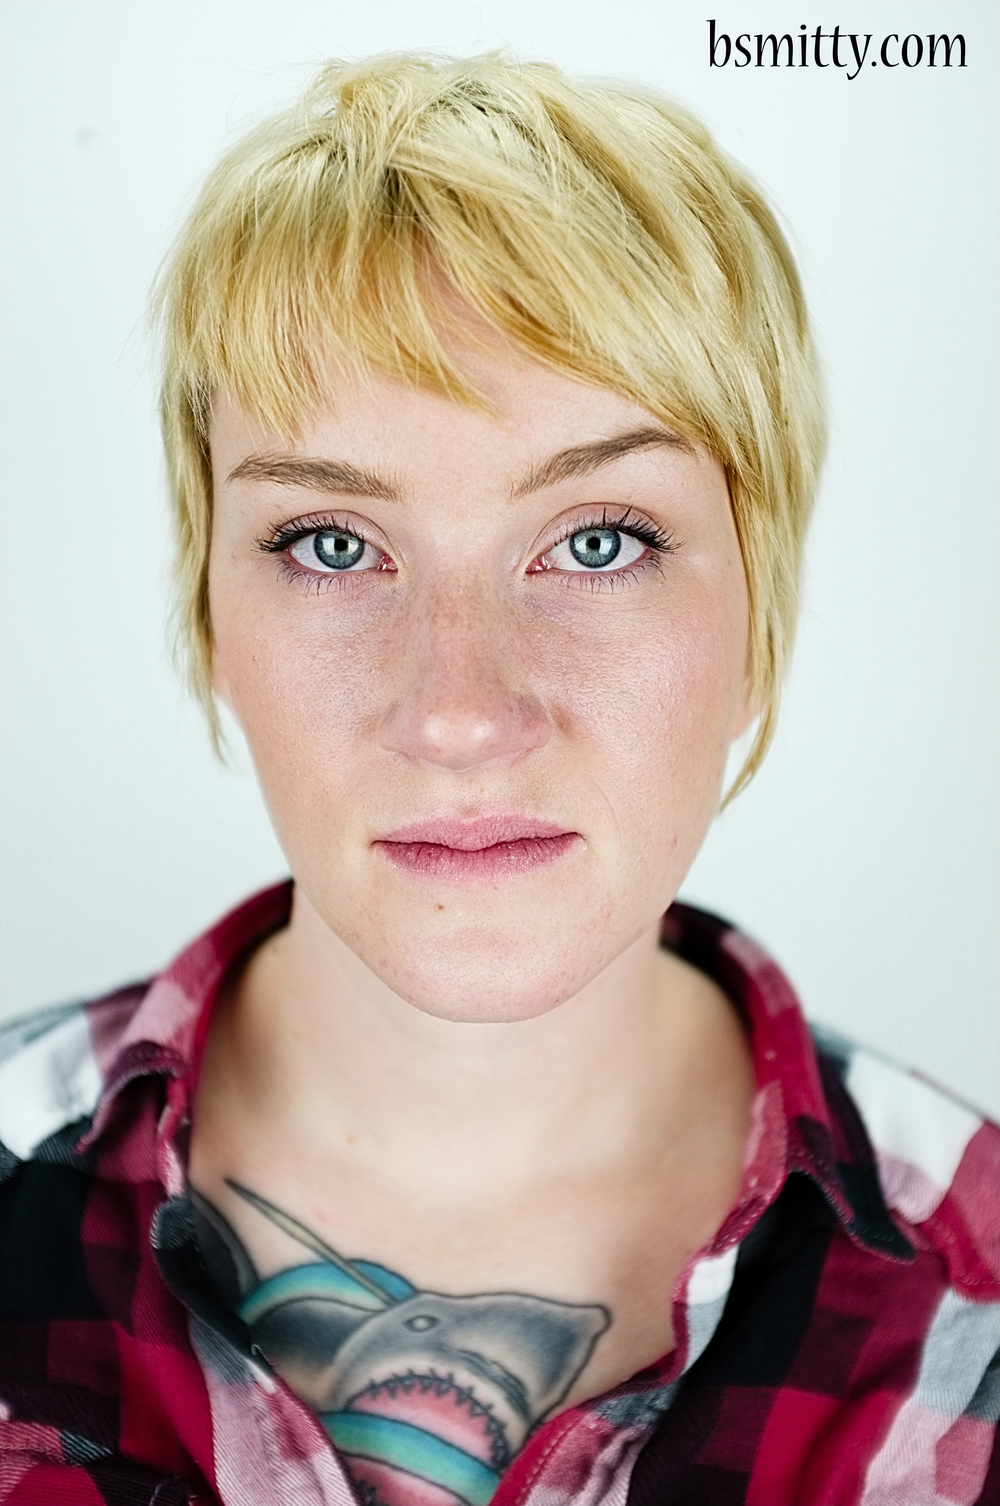 kate marsh - photo bsmitty.jpg